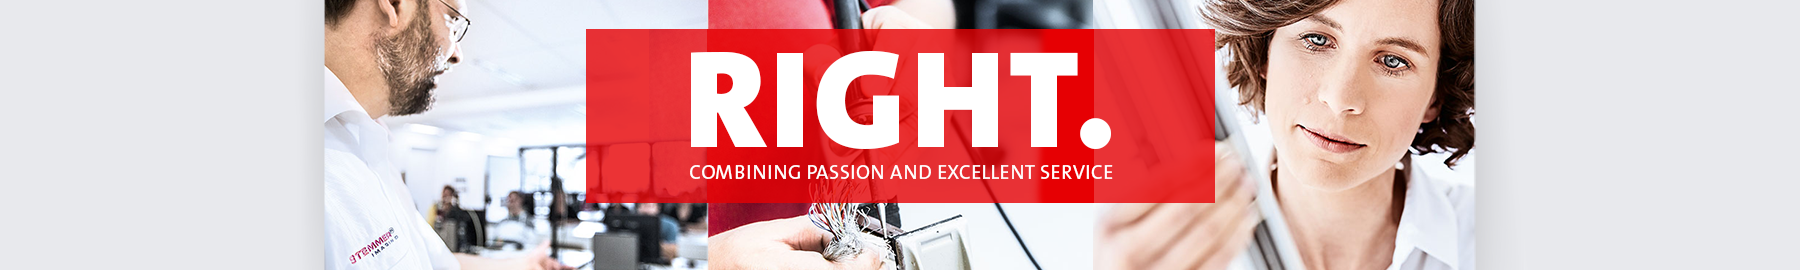 RIGHT - Combining passion and excellent service